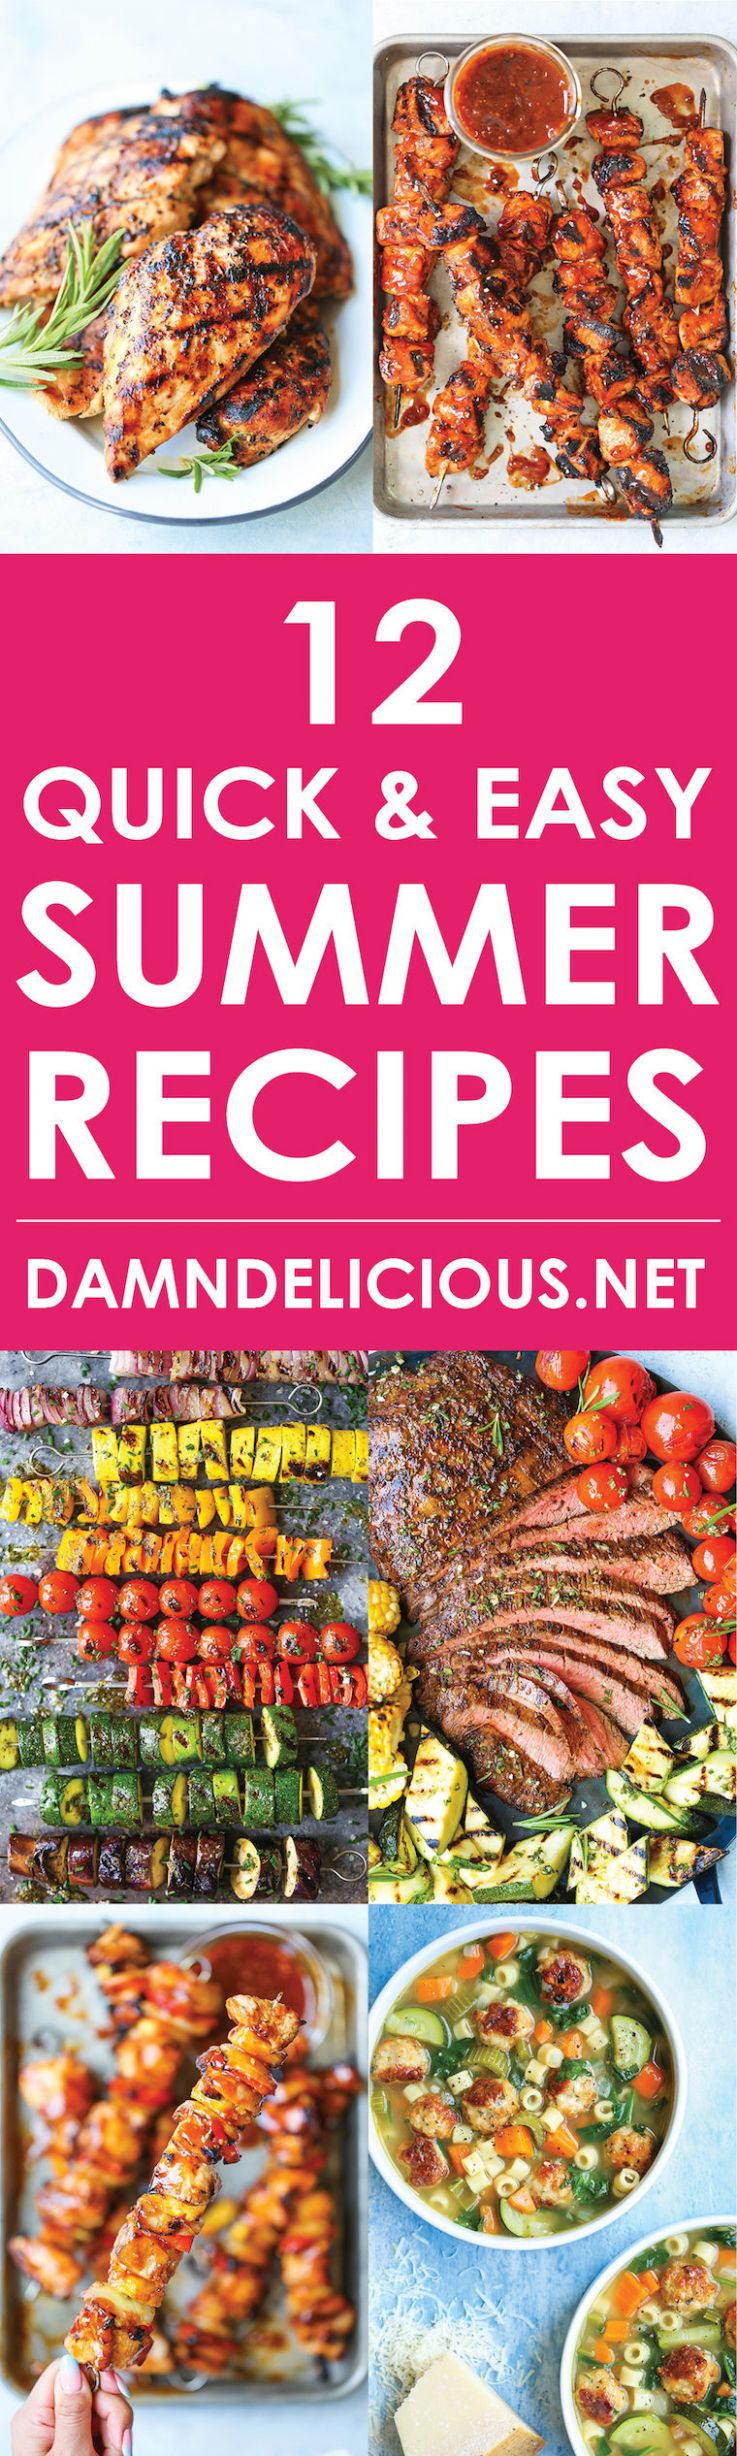 9 Quick and Easy Summer Recipes - Damn Delicious - Summer Recipes Quick And Easy